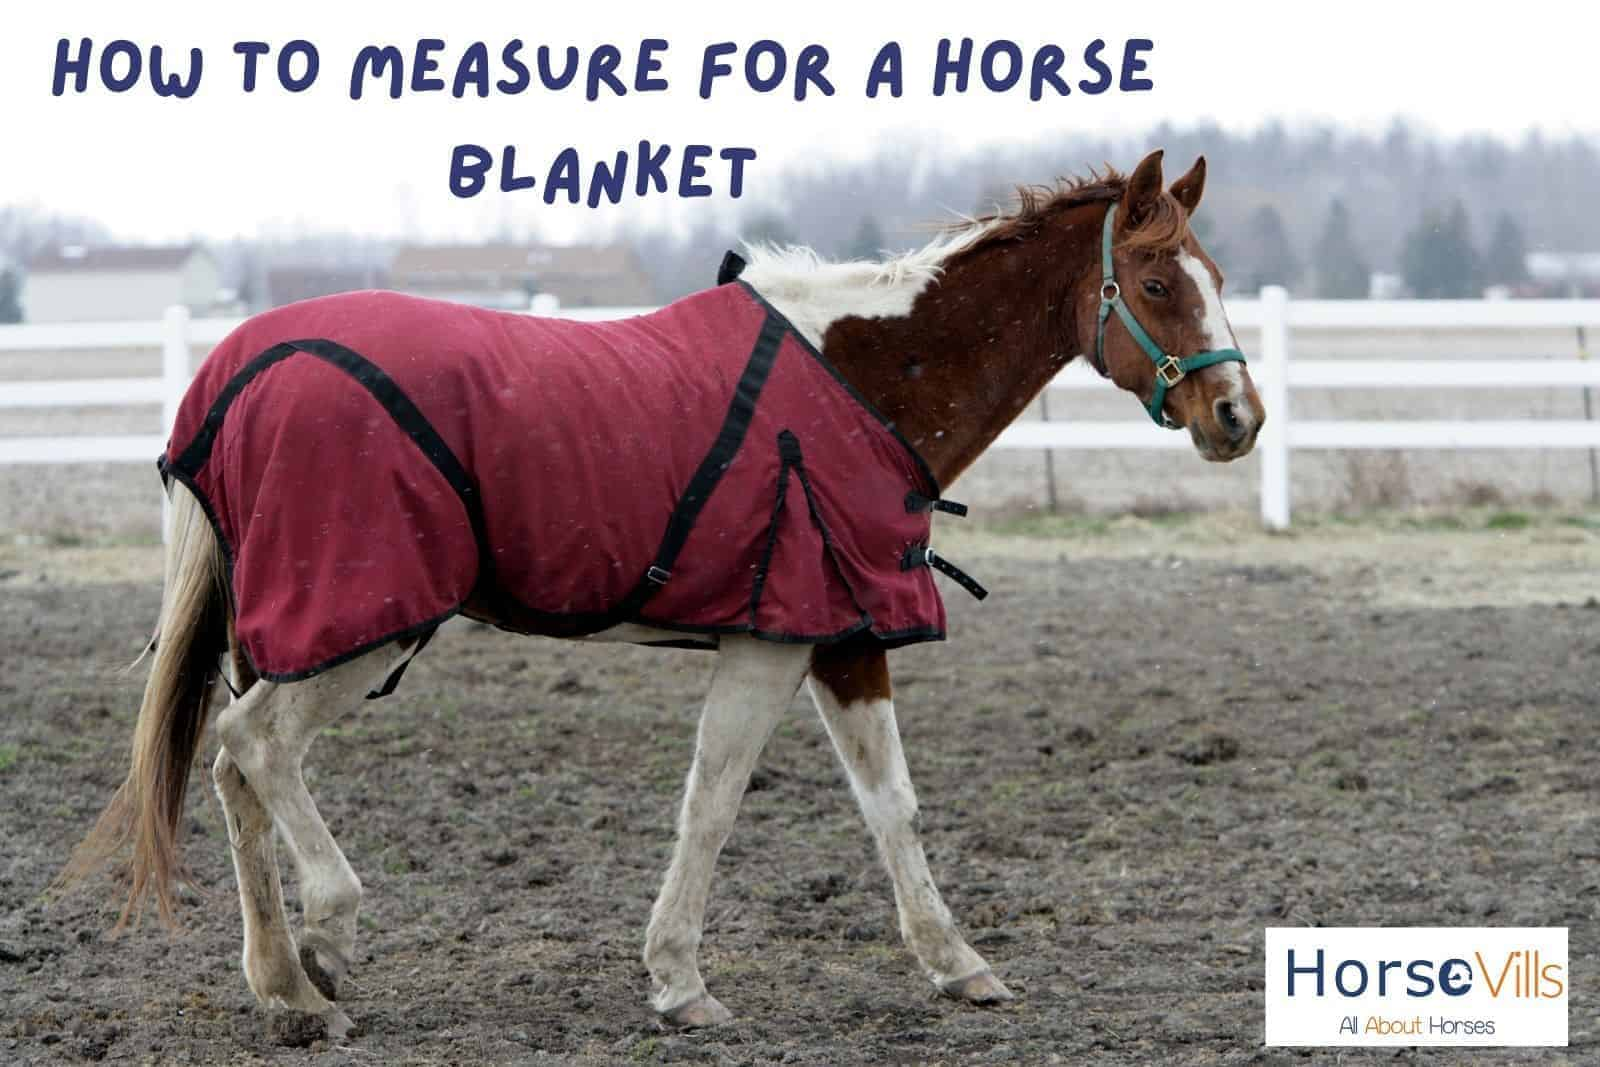 a horse wearing a red blanket